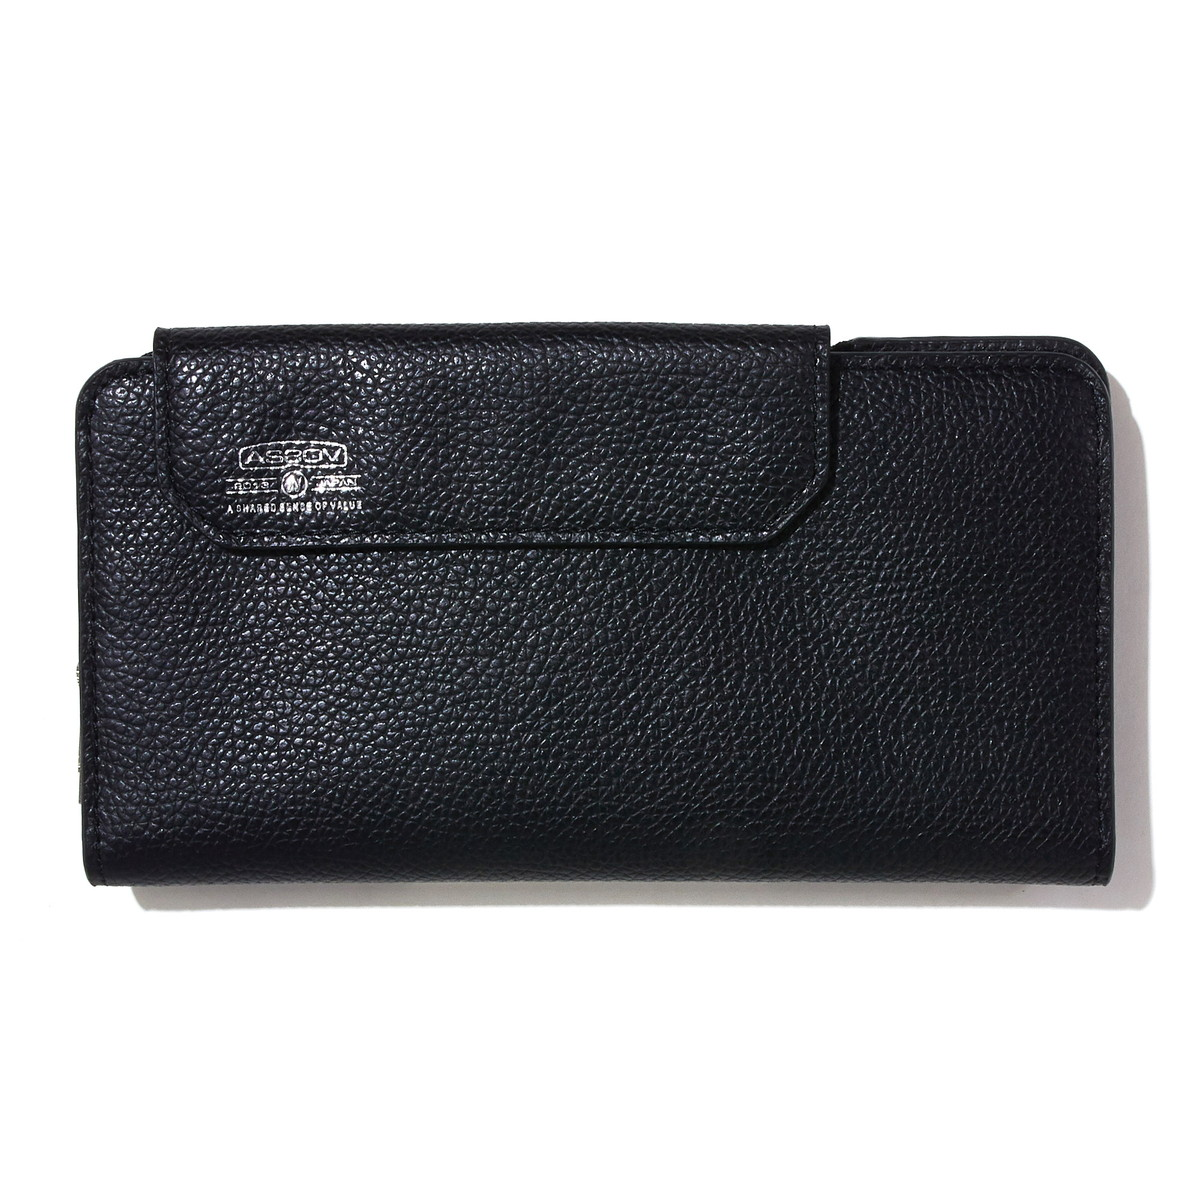 AS2OV (アッソブ) レザー 長財布 ロングウォレット SHRINK LEATHER MOBILE WALLET LONG WALLET 081700